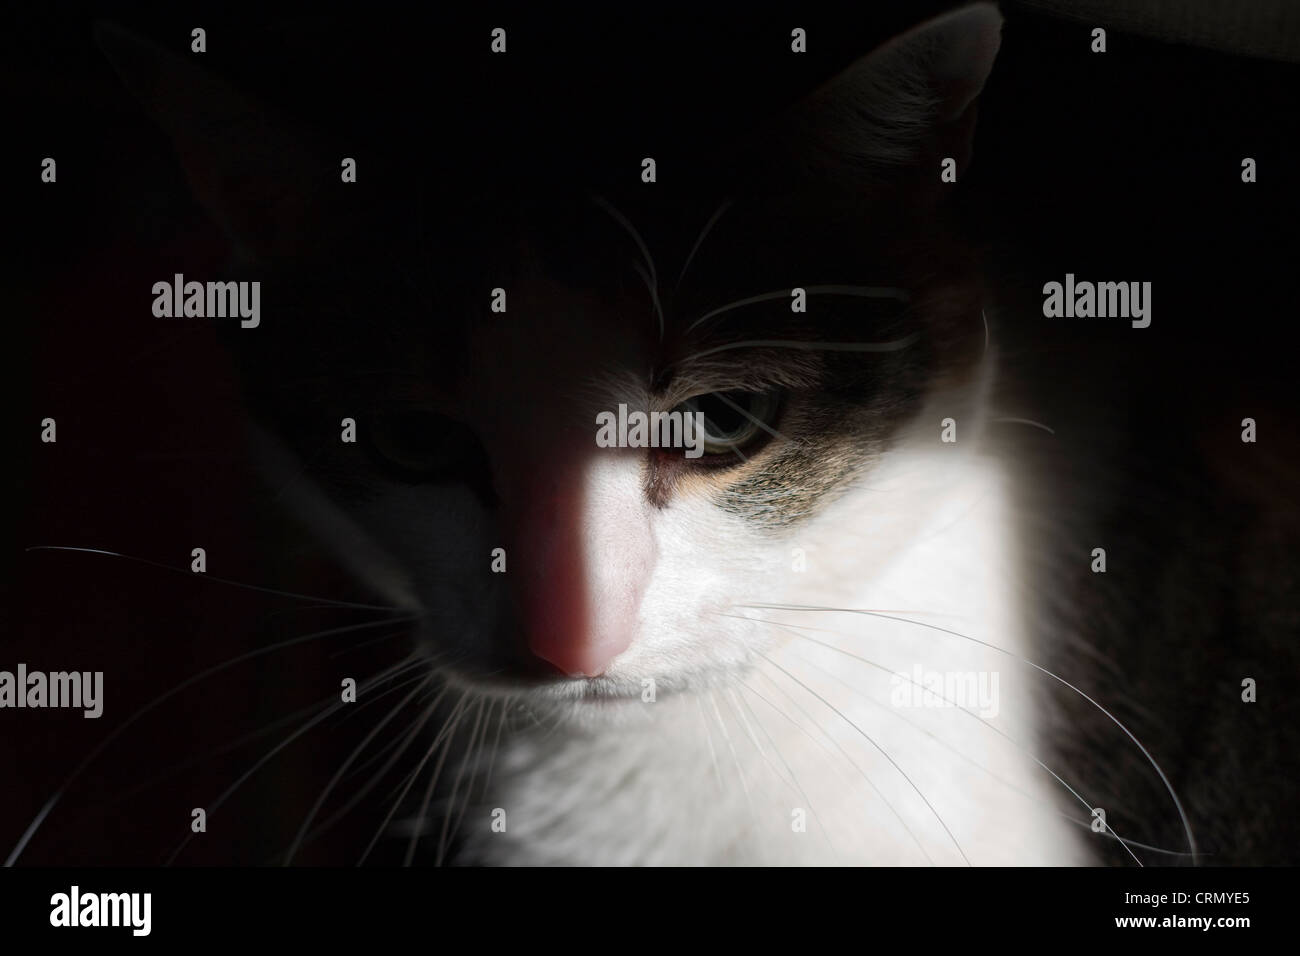 Cat emerging from the shadows - Stock Image